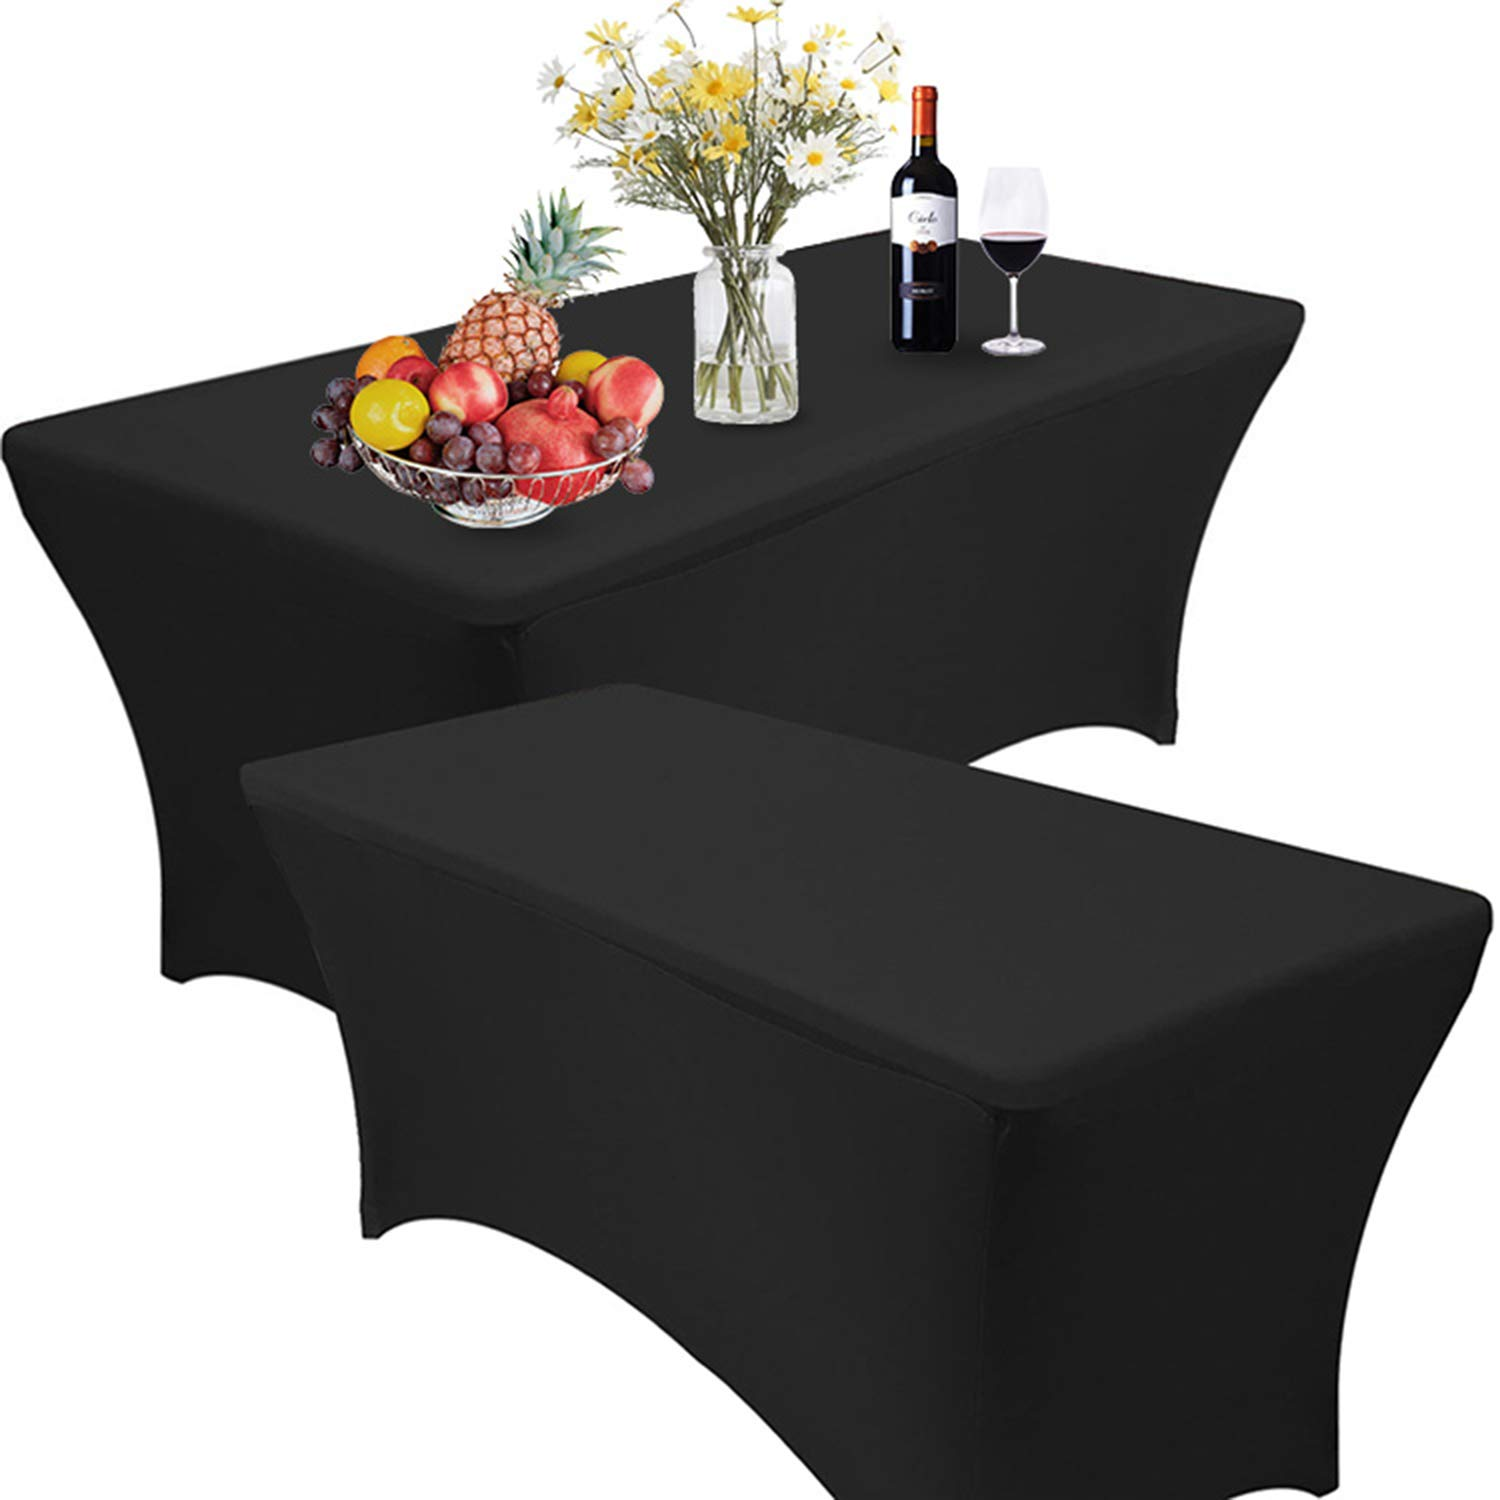 Reliancer 2 Pack 48FT Rectangular Spandex Table Cover Four-Way Tight Fitted Stretch Tablecloth Table Cloth for Outdoor Party DJ Tradeshows Banquet Vendors Weddings Celebrations(2PC 8FT, Black) by Reliancer